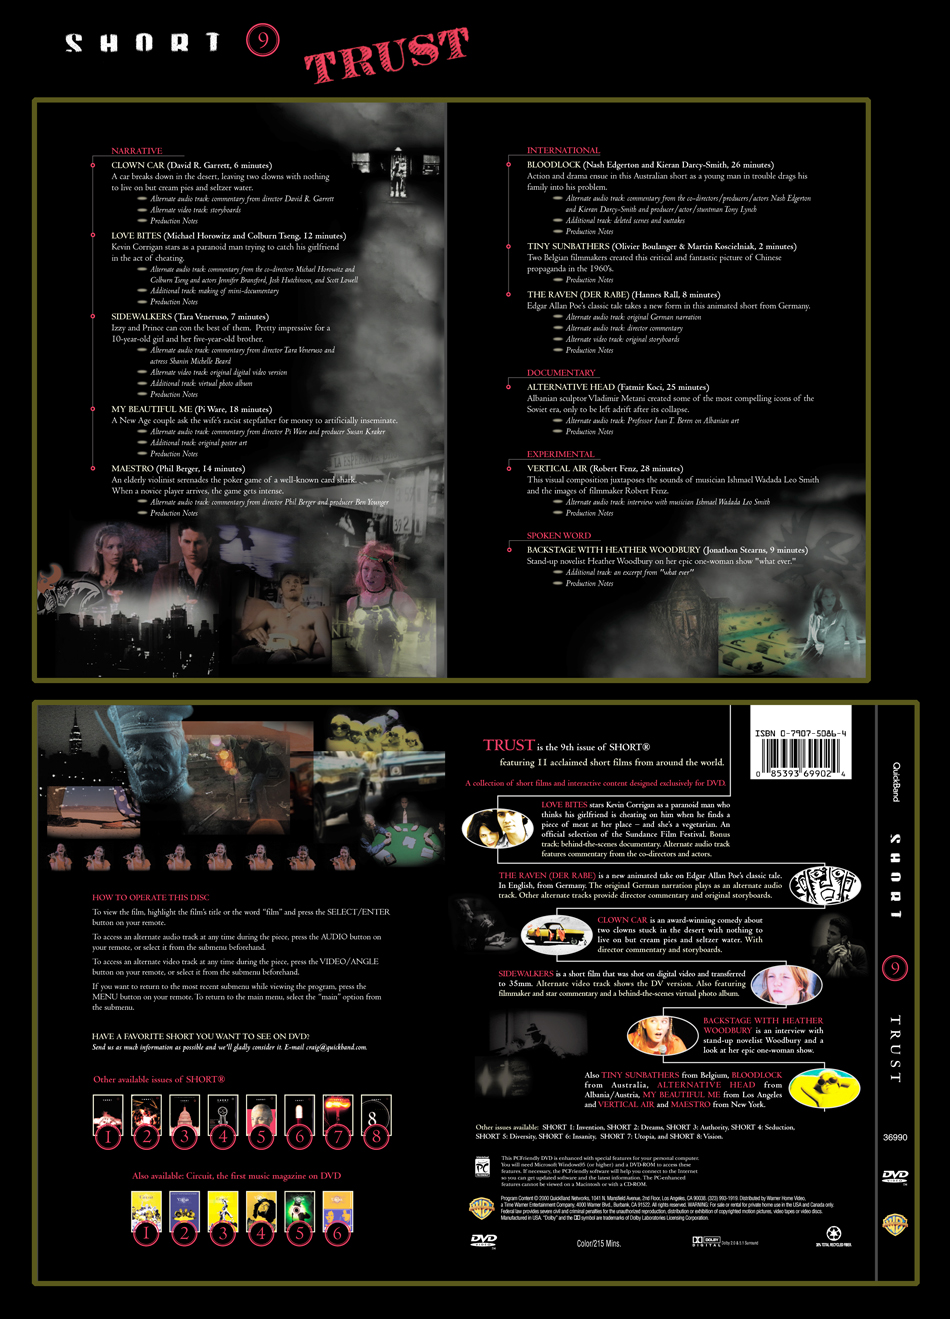 QuickBand Short 9 Trust DVD Package